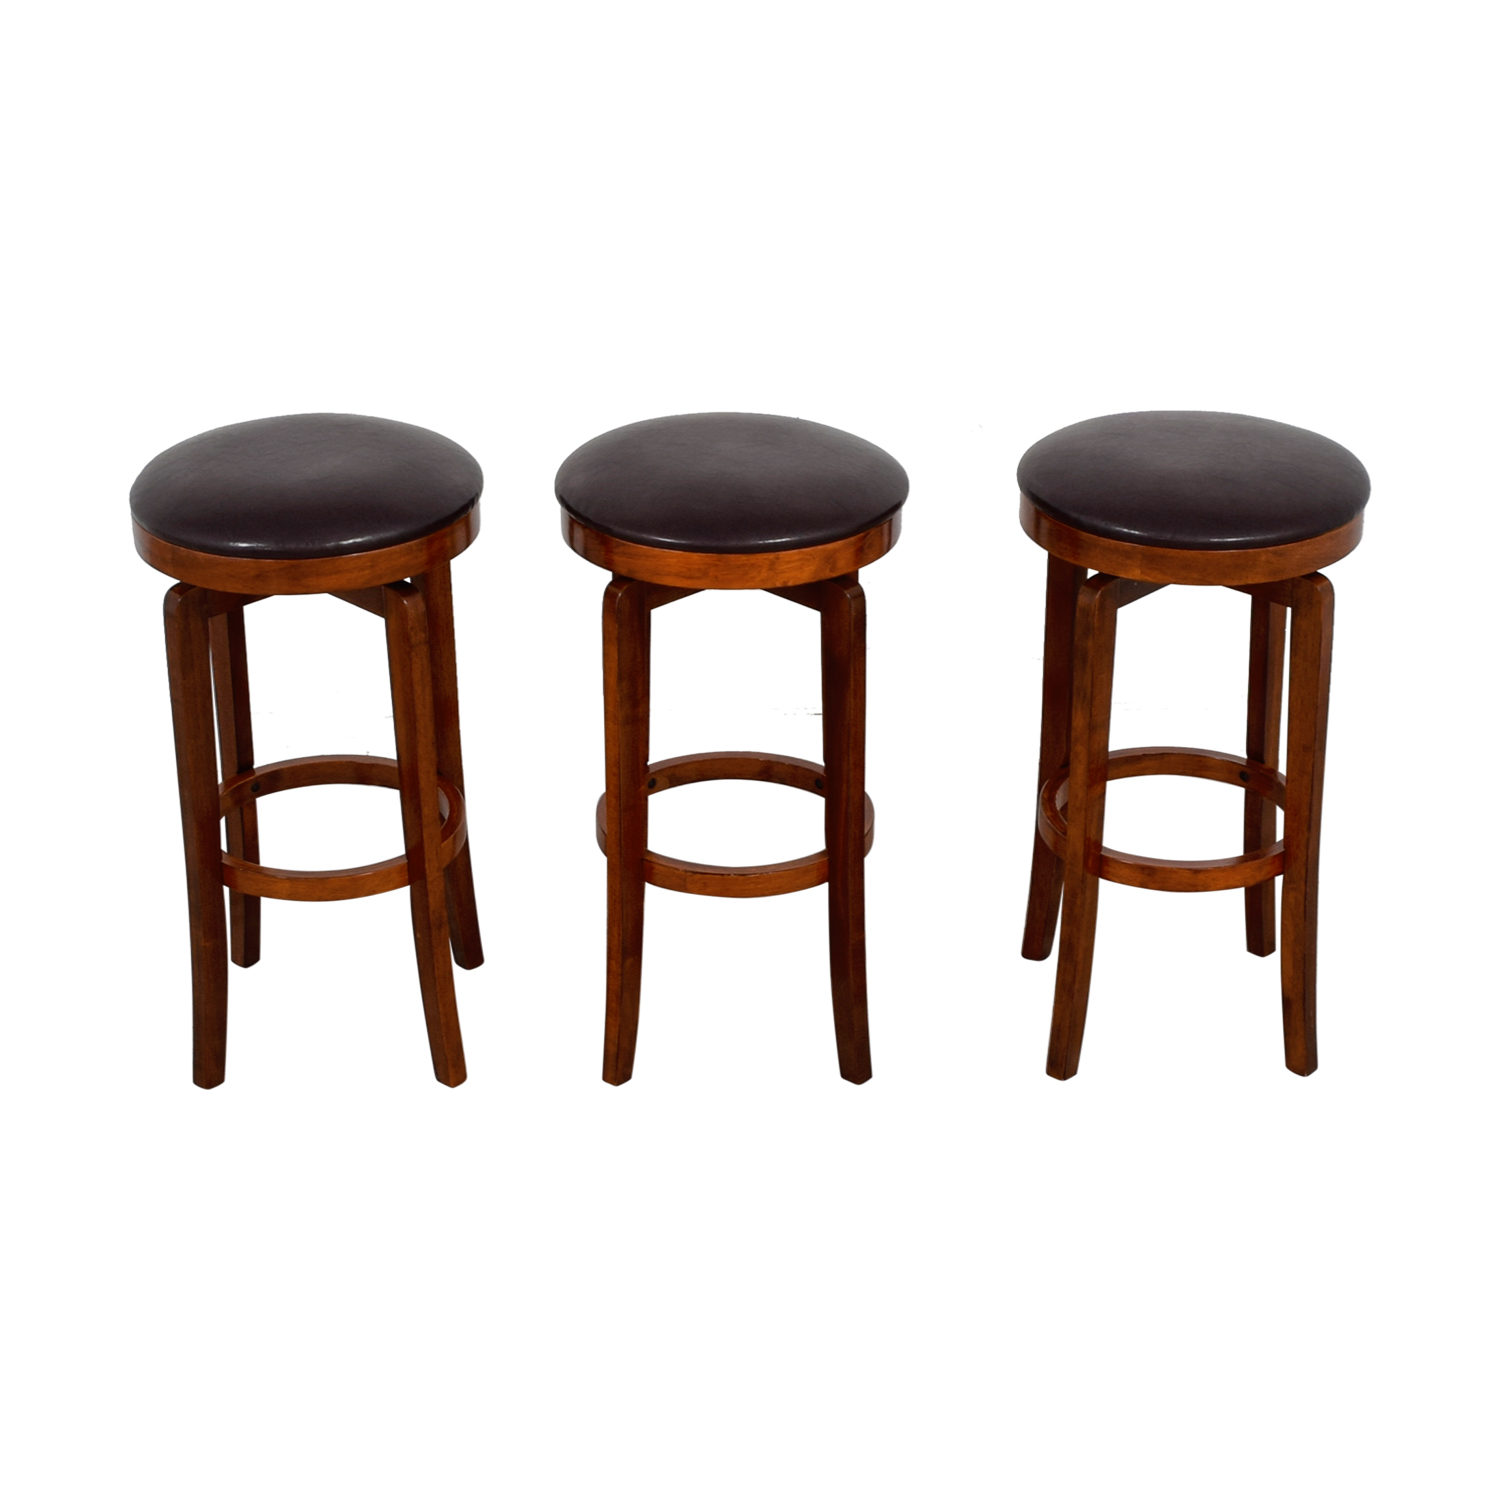 Bob's Furniture Brown Stools Bob's Furniture